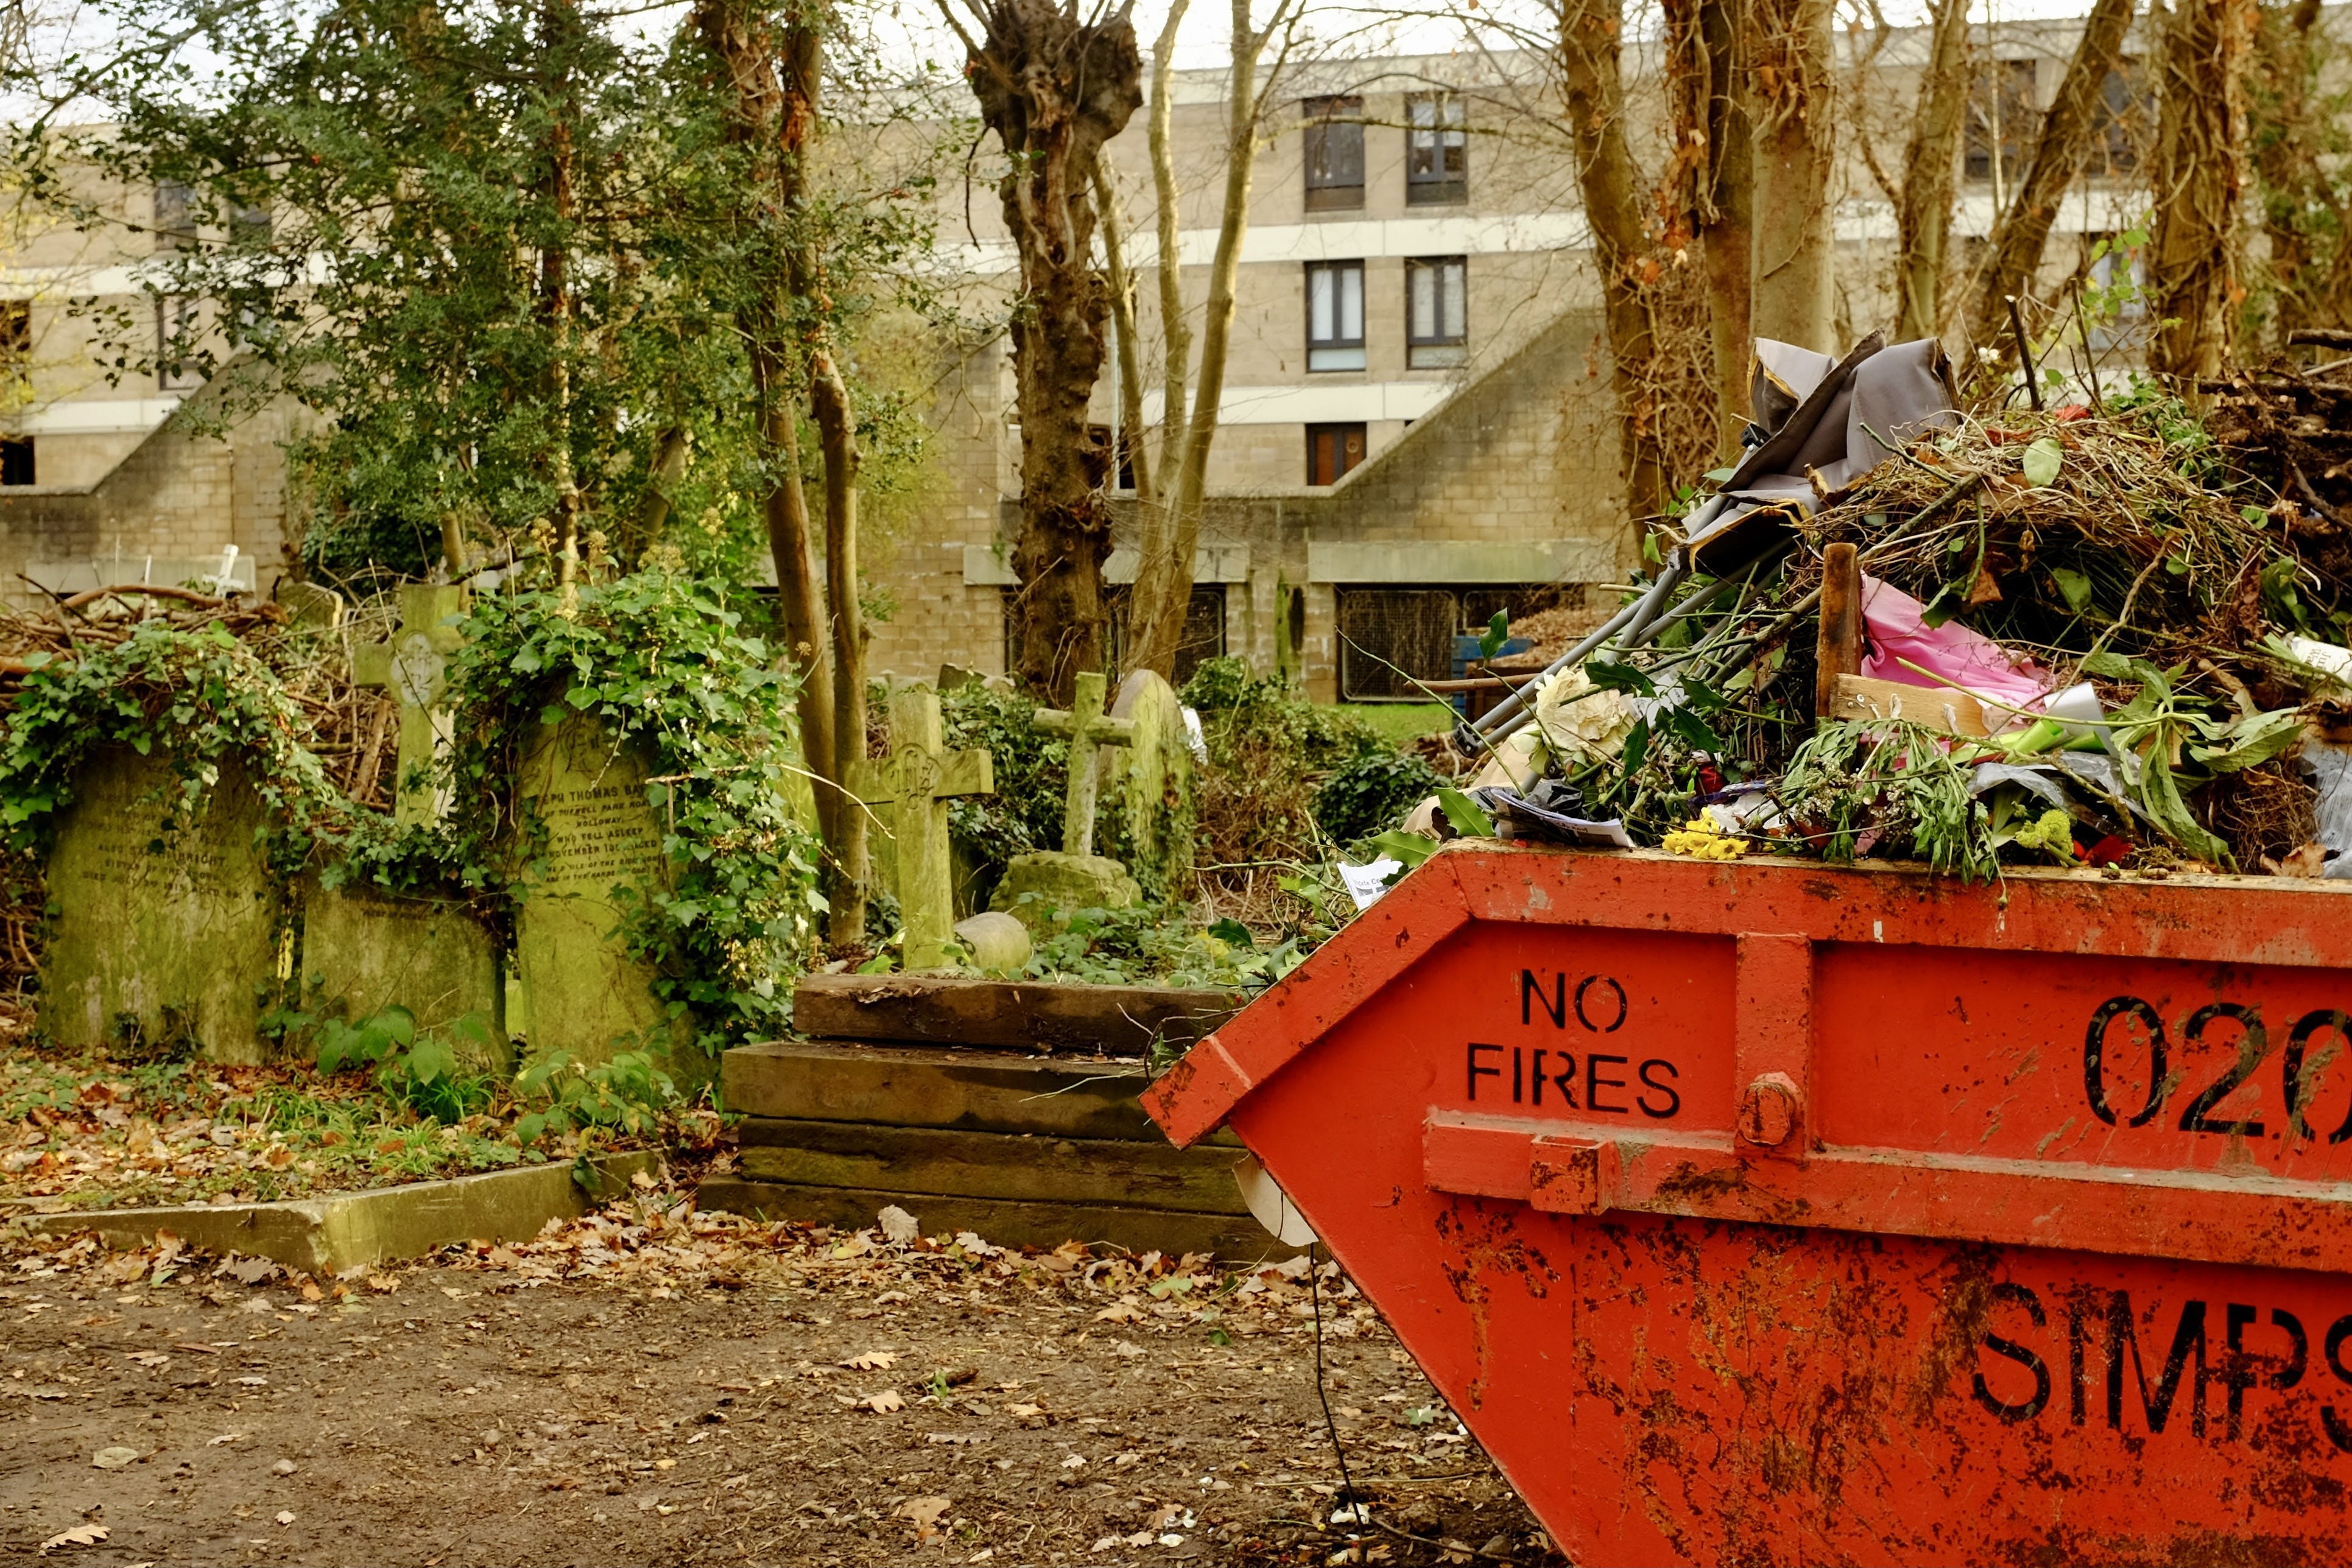 A large dumpster near a traditional cemetery